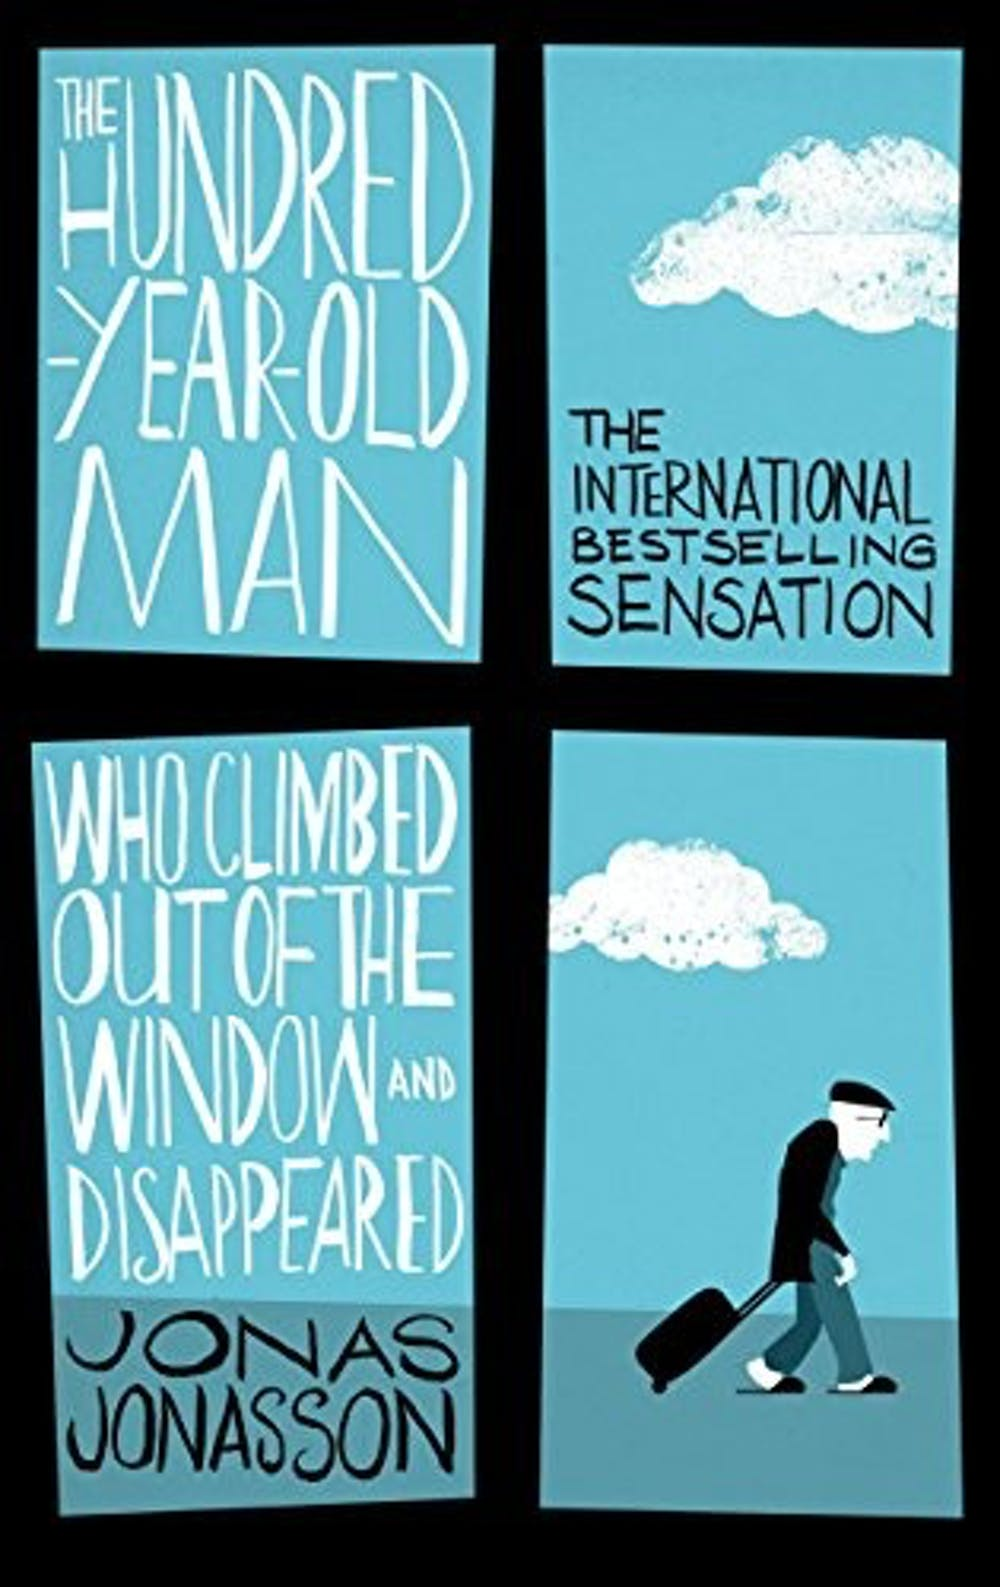 The Hundred-Year Old Man Who Climbed Out of The Window and Disappeared